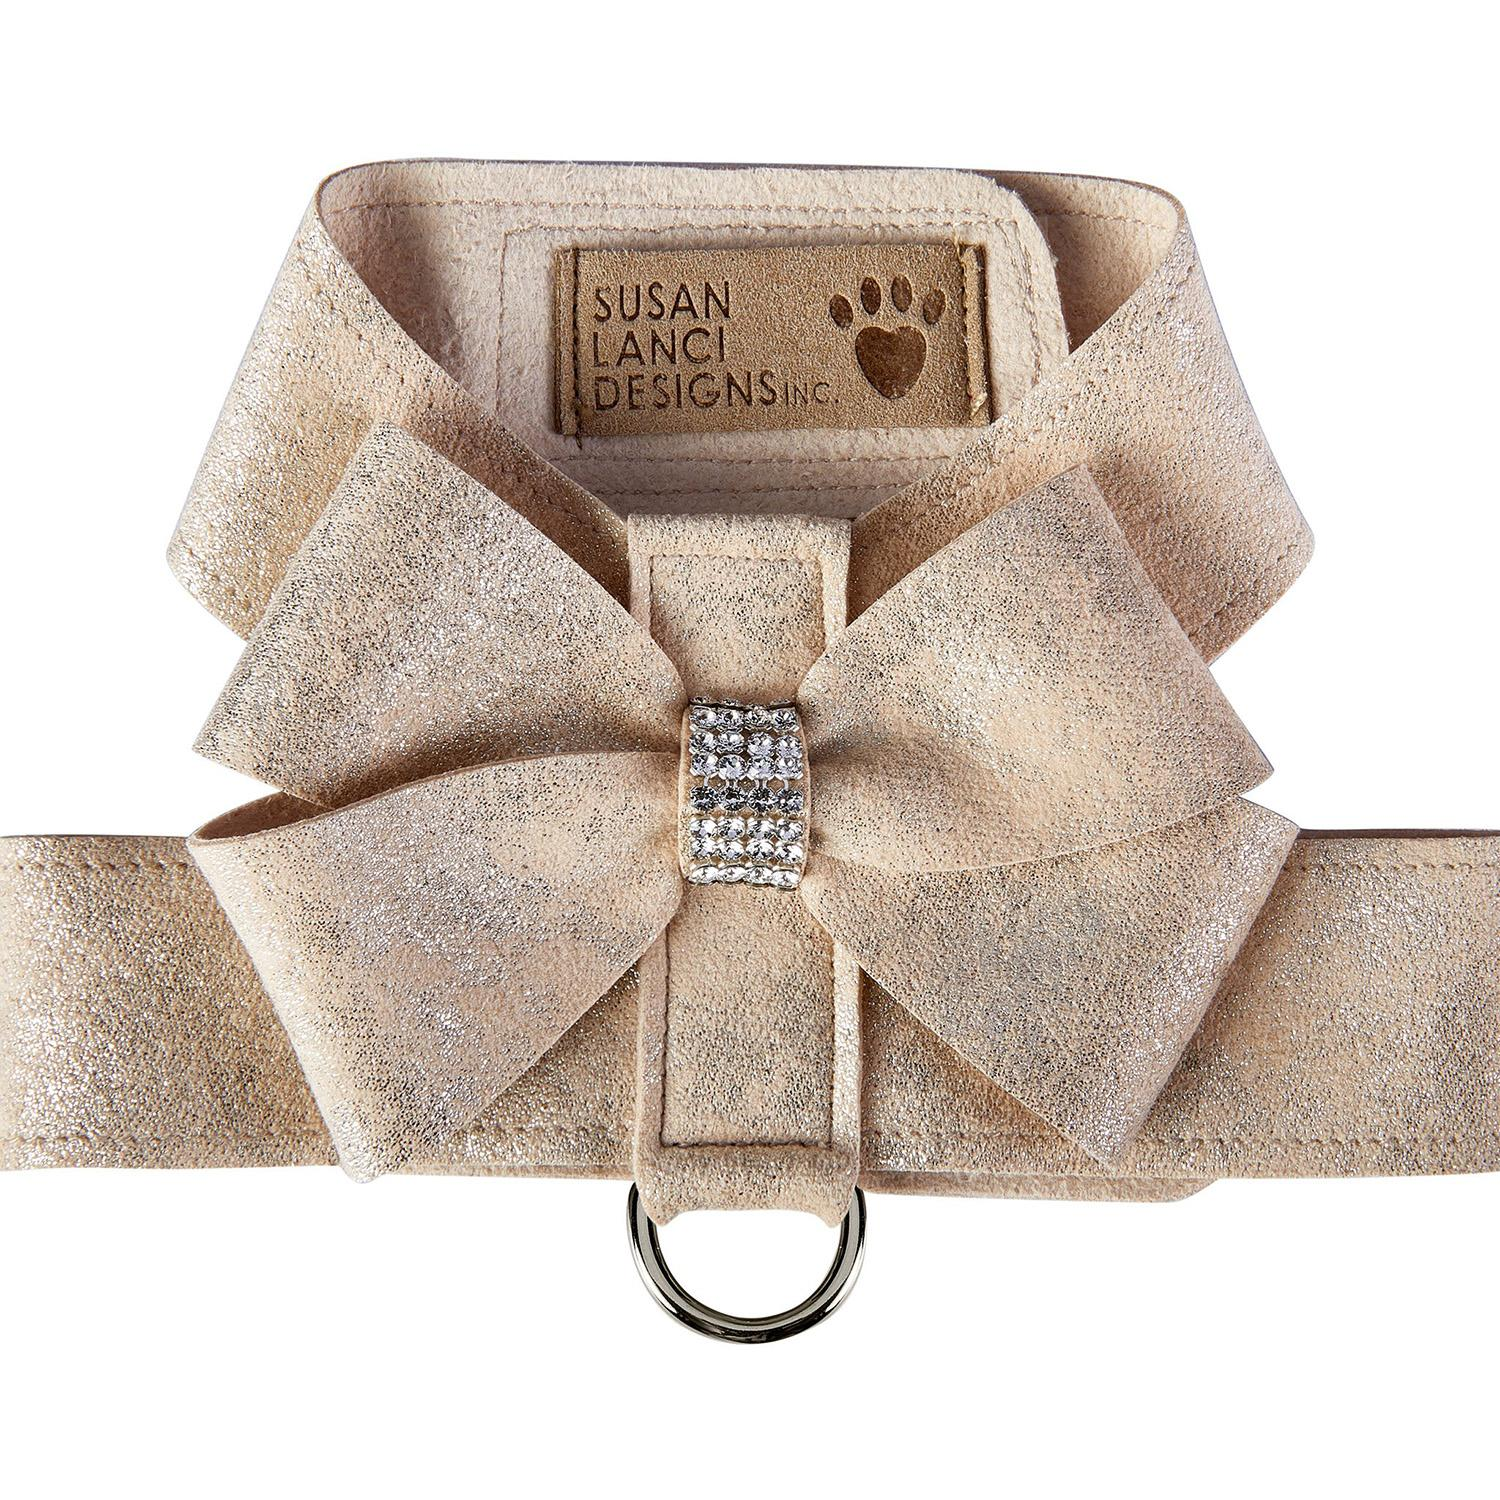 Champagne Glitzerati Nouveau Bow Tinkie Dog Harness by Susan Lanci